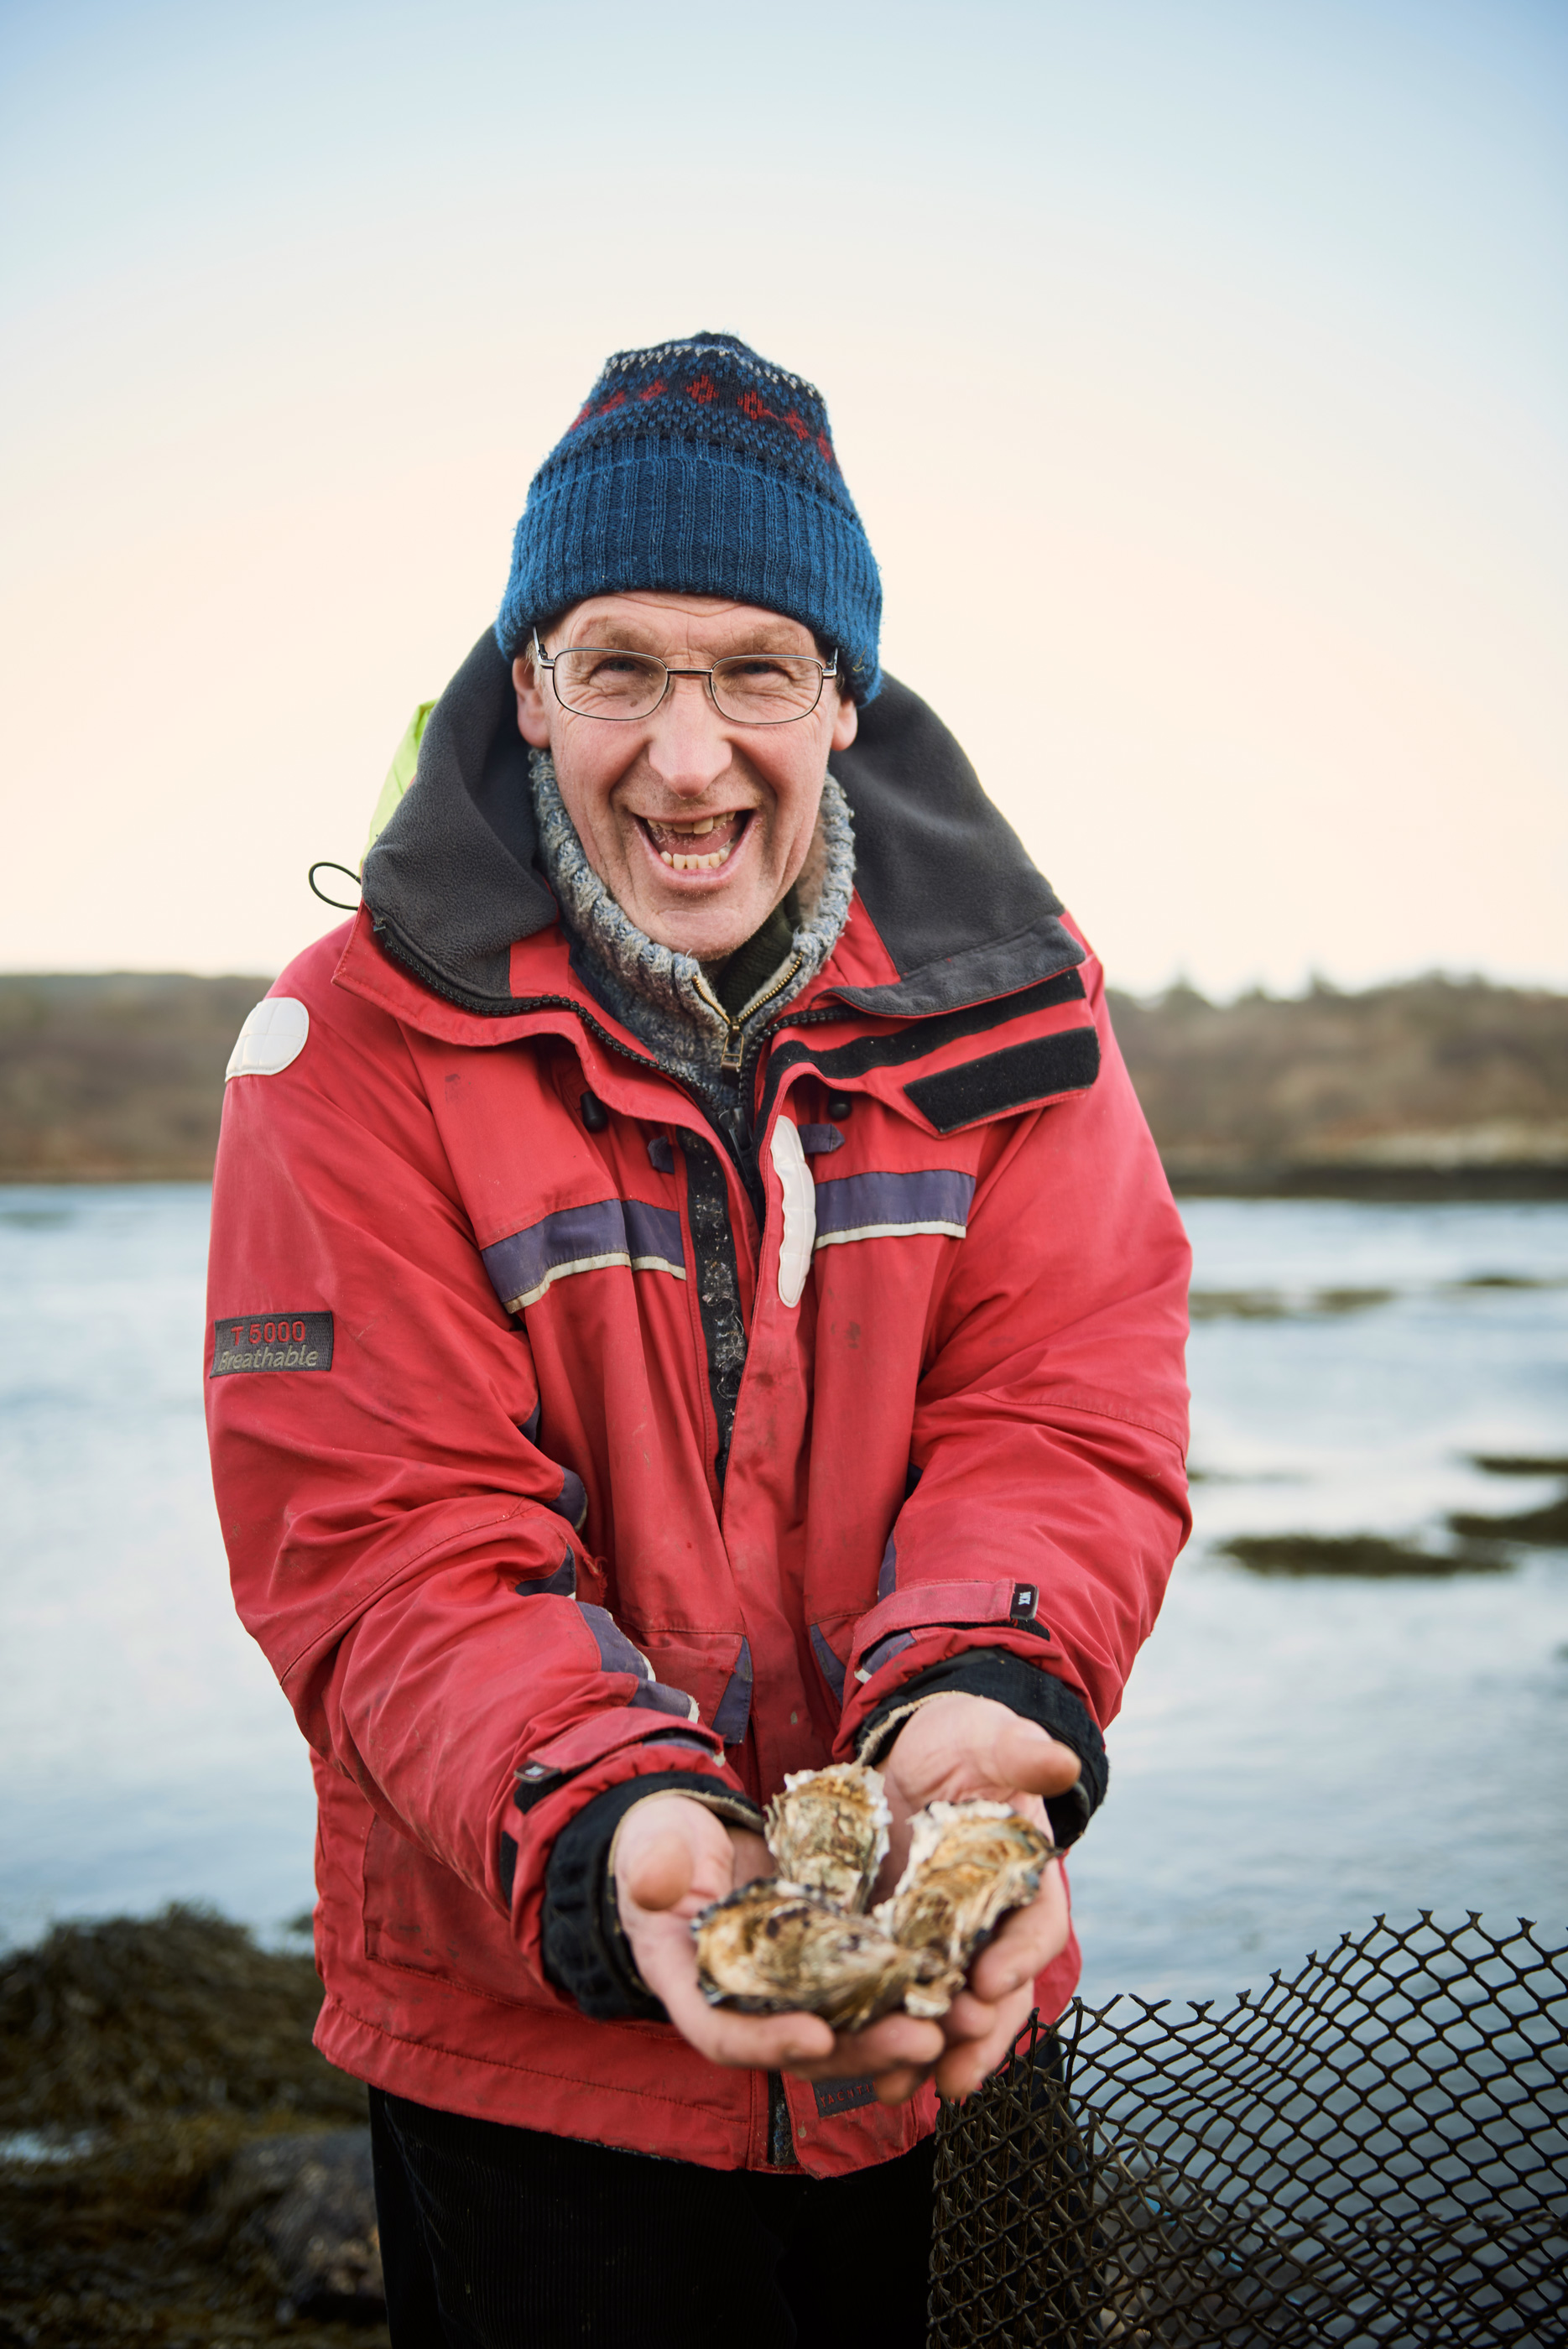 Matt-Stansfield-Photographer-lifestyle-food-producers-oysters-575